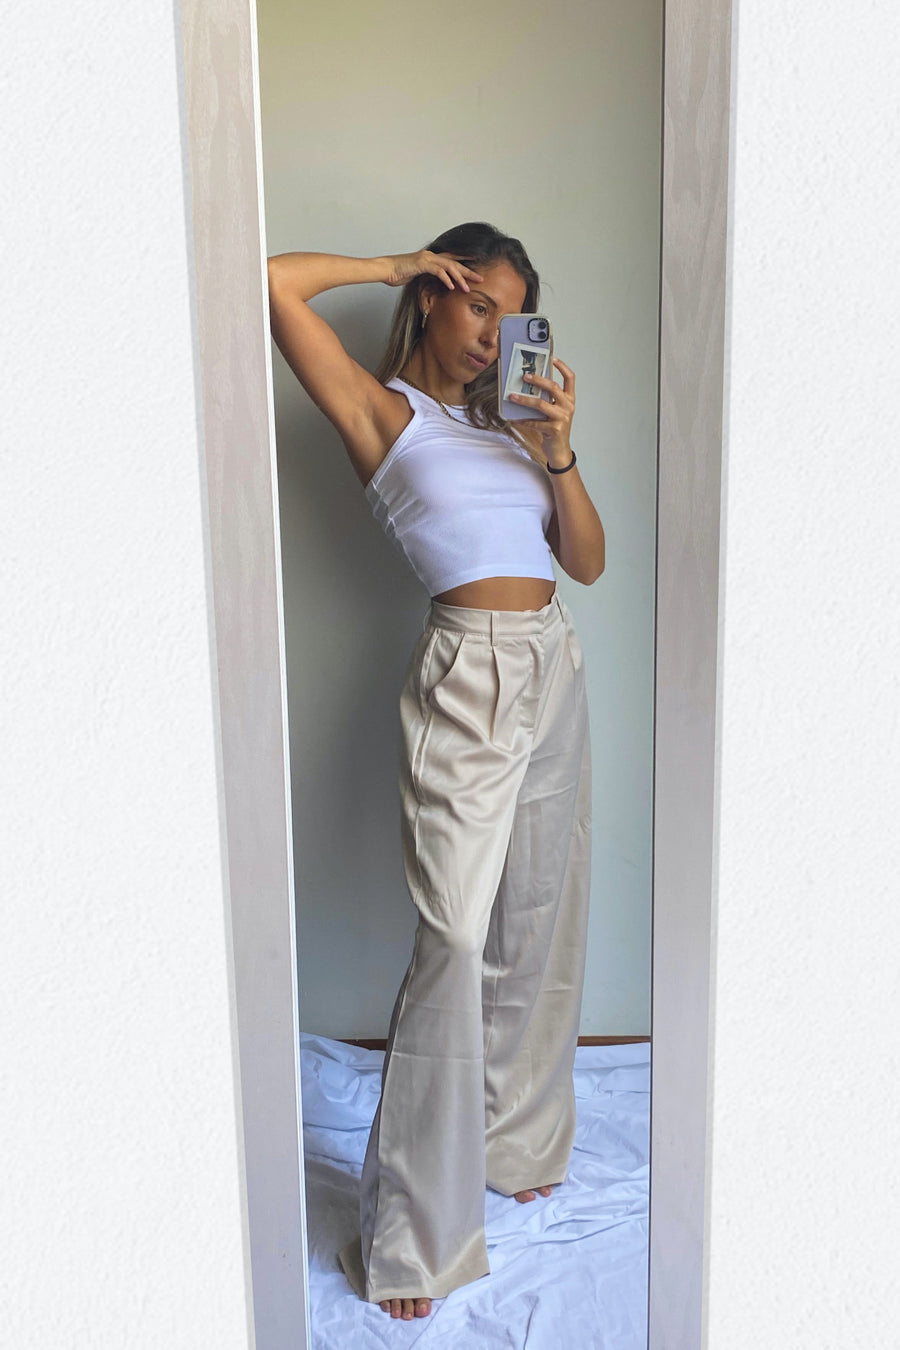 LADY BOSS SILKY PANTS / OYSTER - Halite Clothing